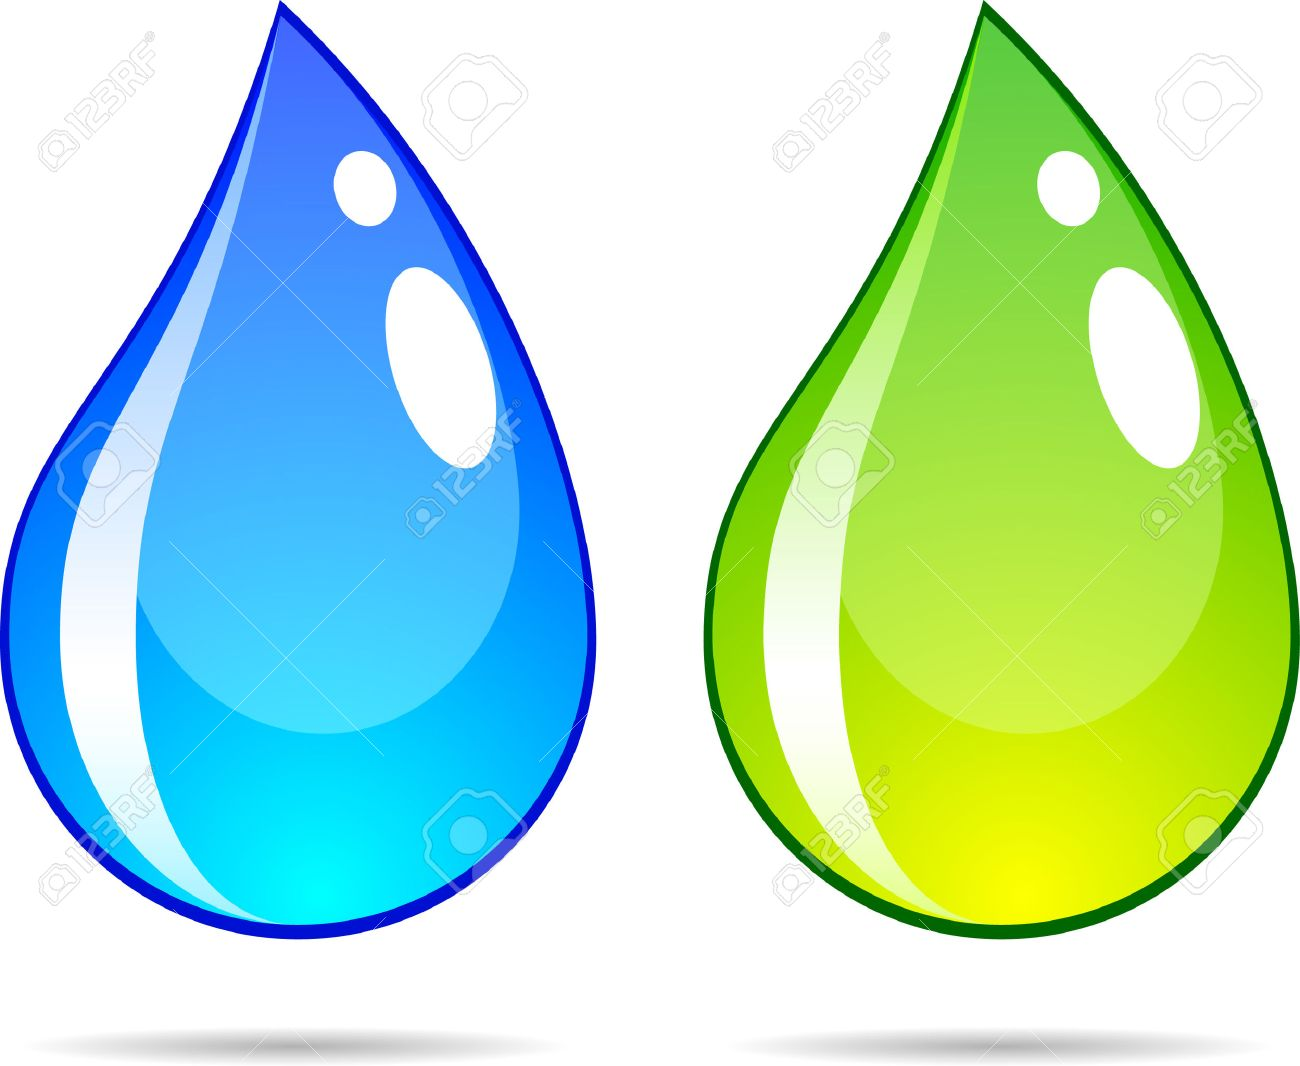 bright water drops vector illustration royalty free cliparts rh 123rf com water droplets vector images water drops vector download